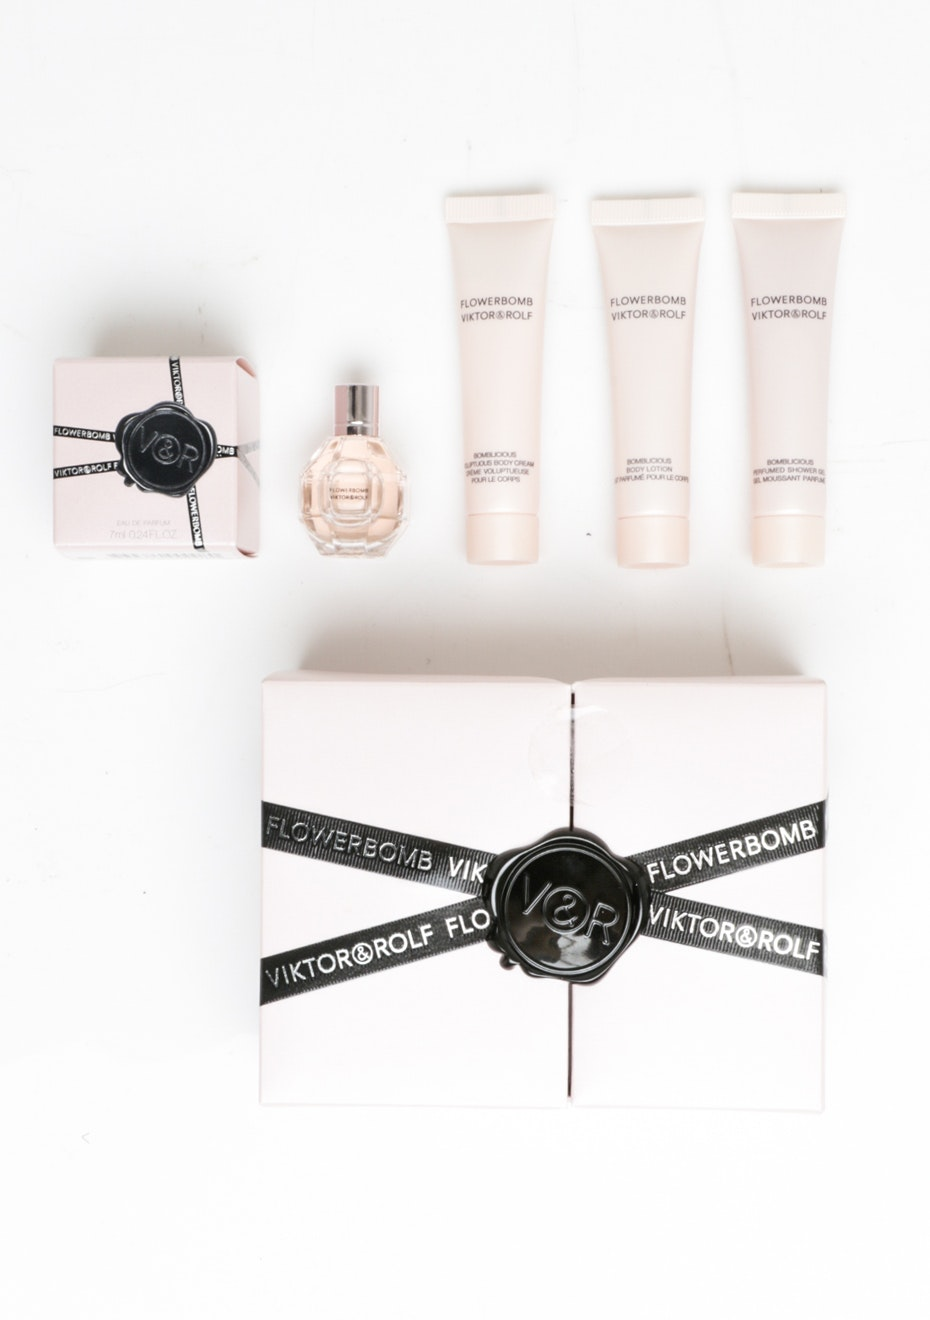 Viktor & Rolf Flower Bomb 4pc Mini Giftset Boxed